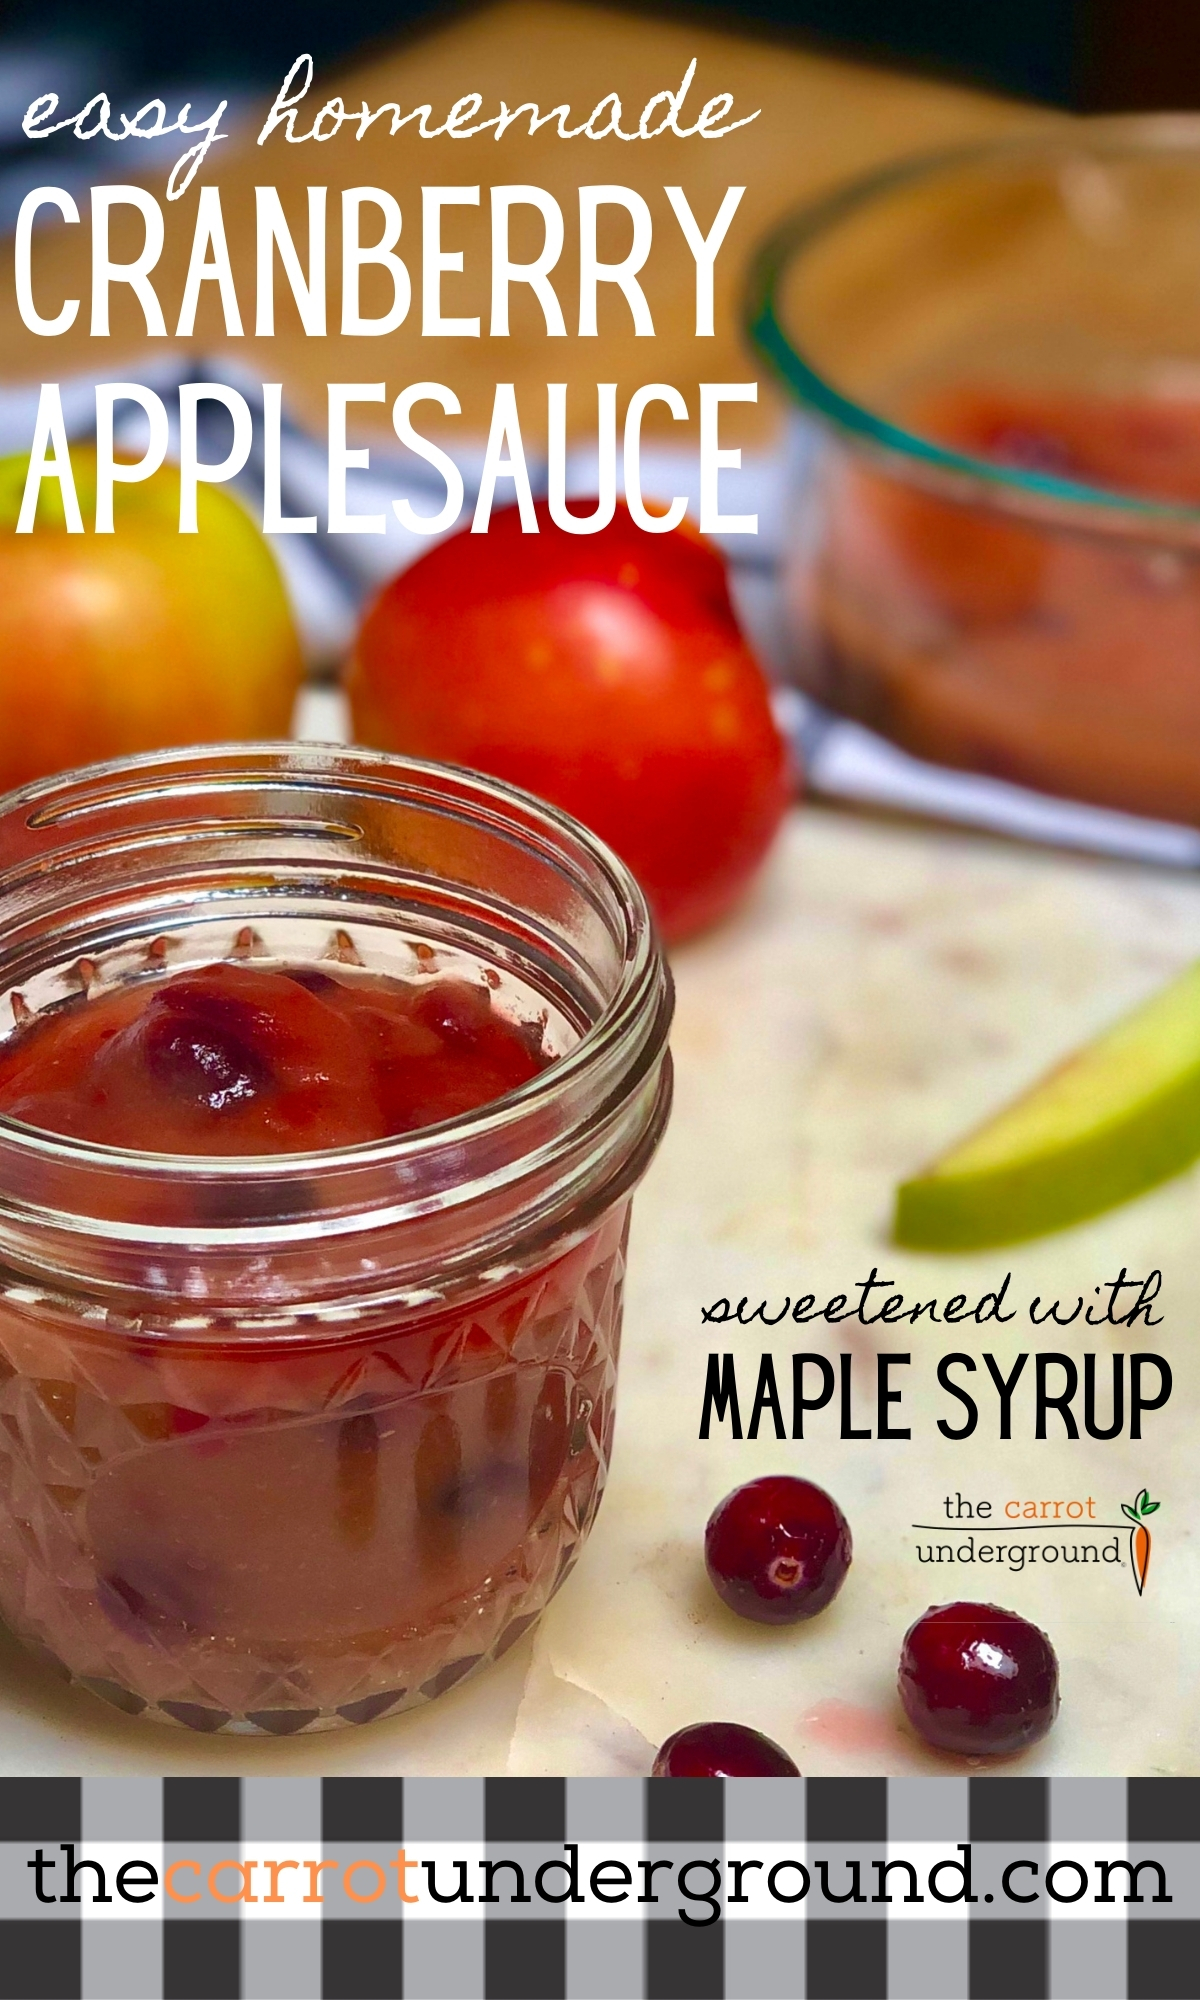 A jam jar filled with easy homemade cranberry applesauce sweetened with maple syrup.